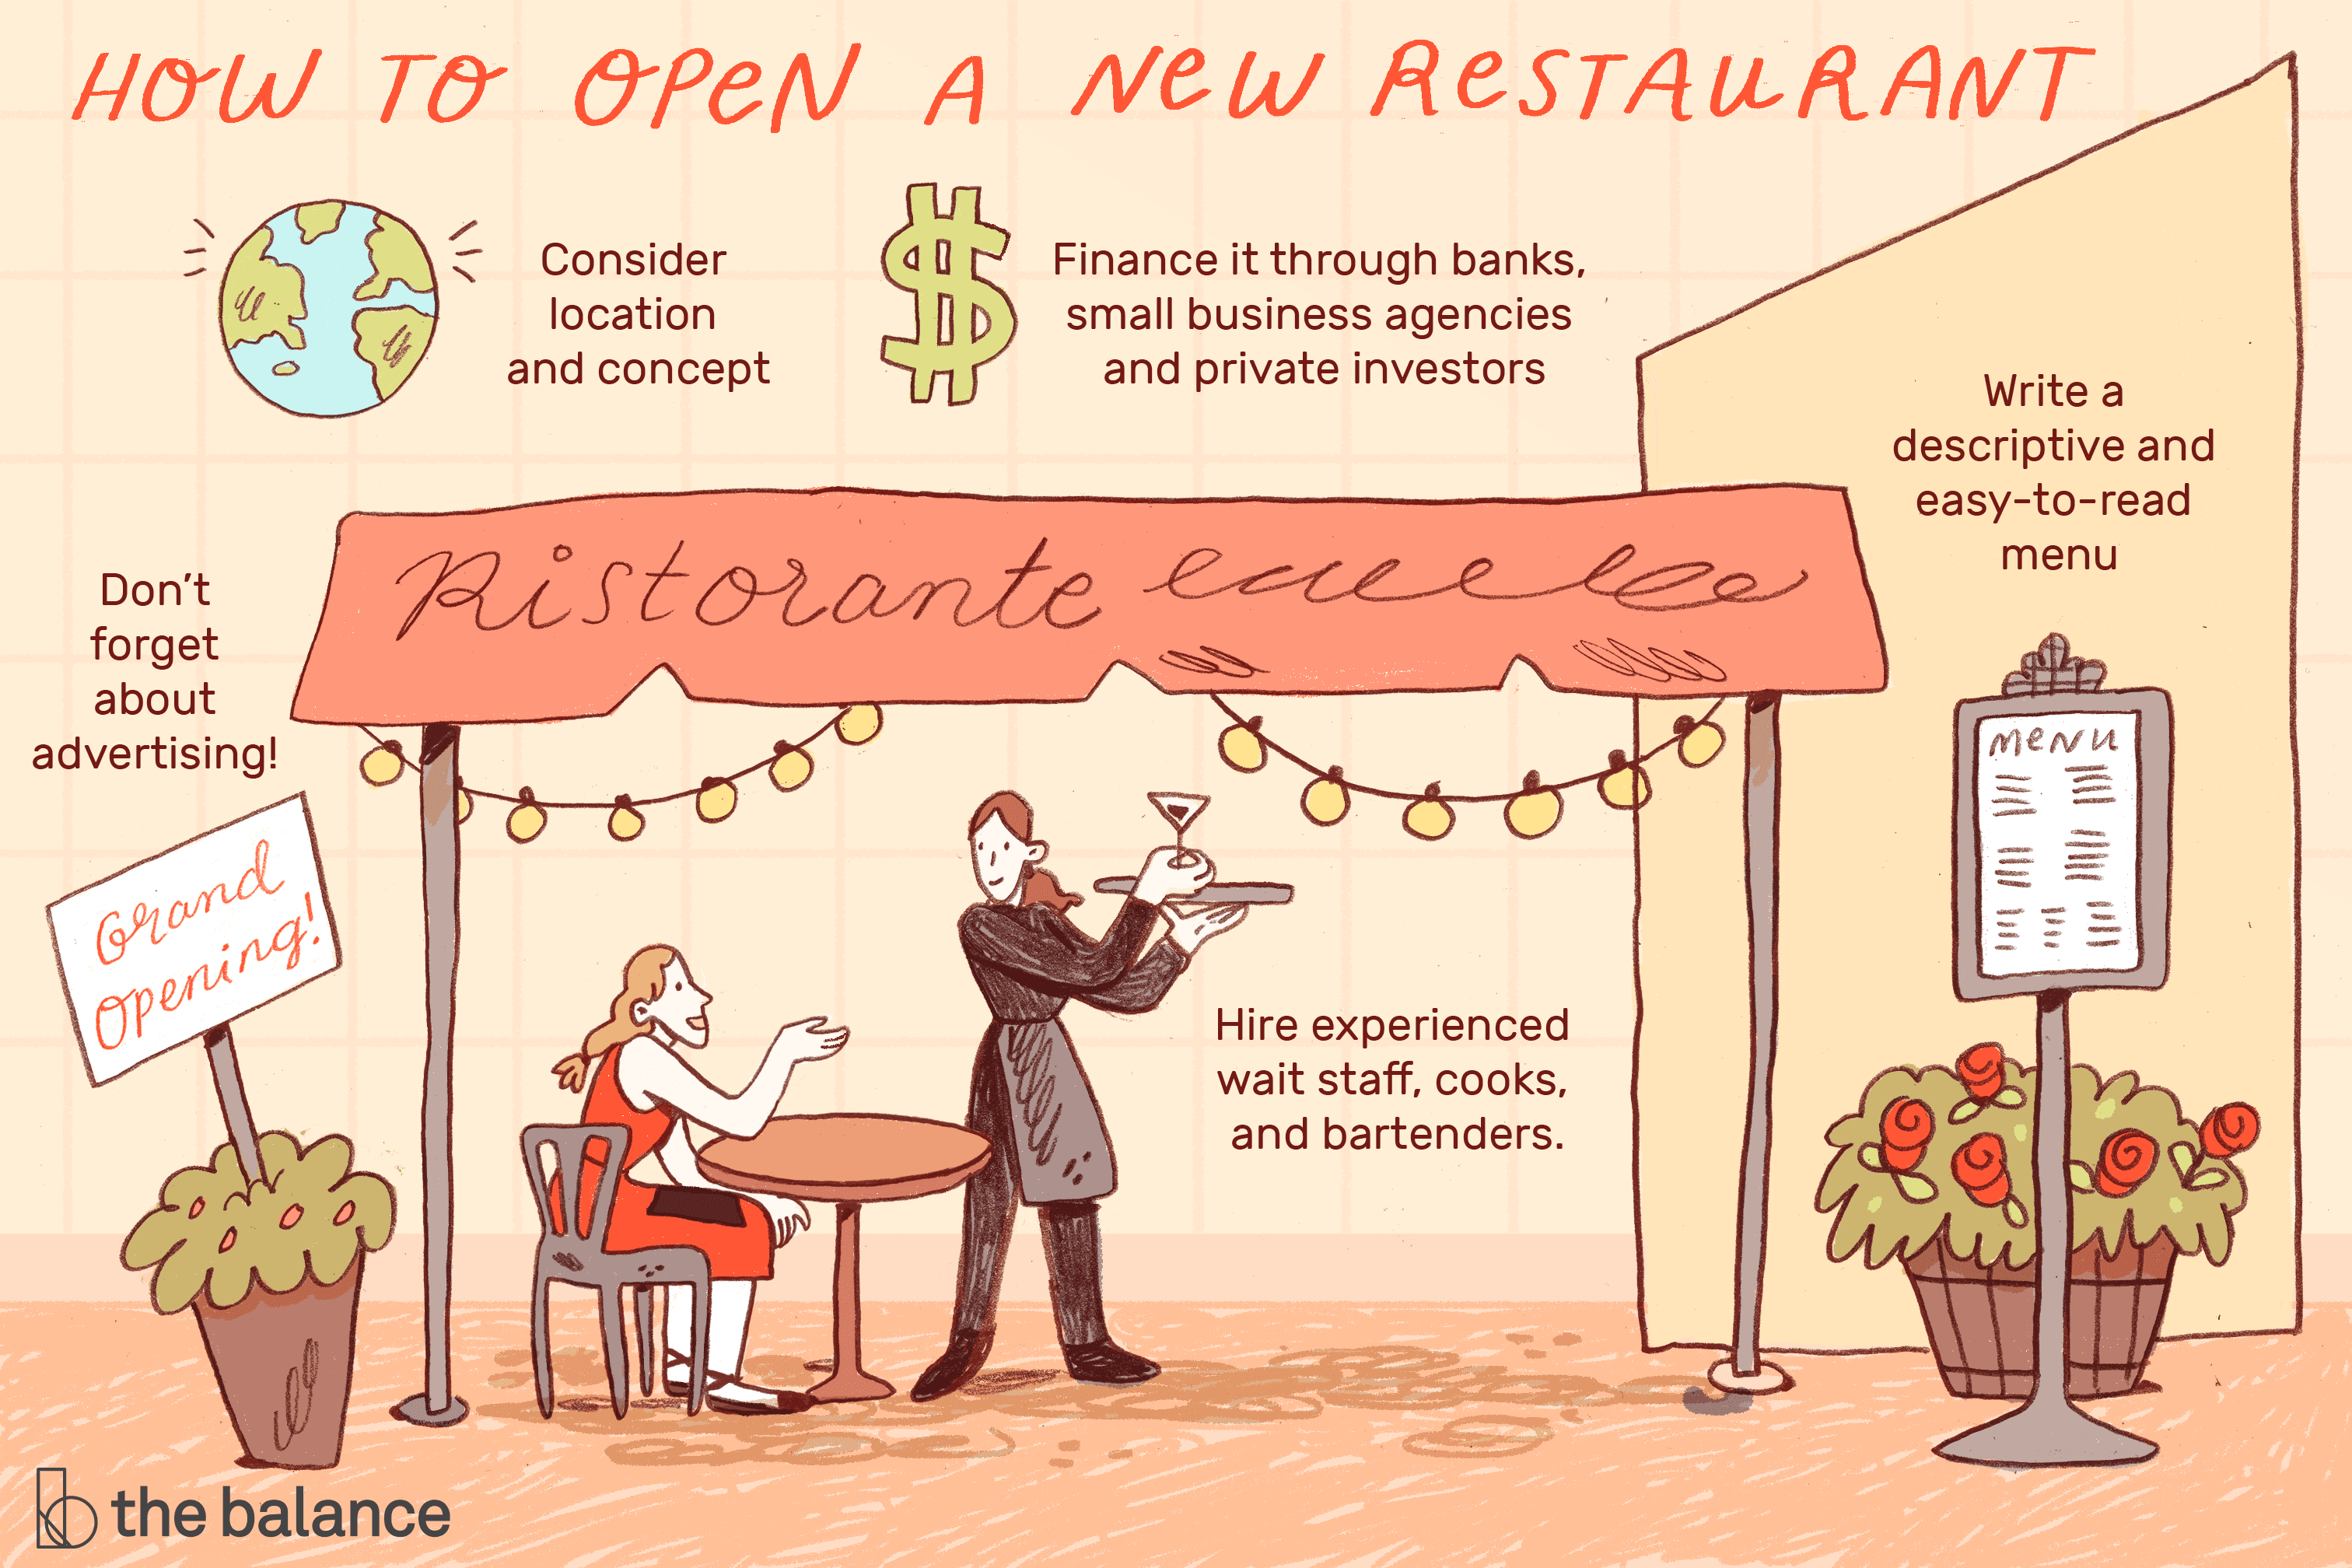 What Things To Consider In Opening A Casual Restaurant